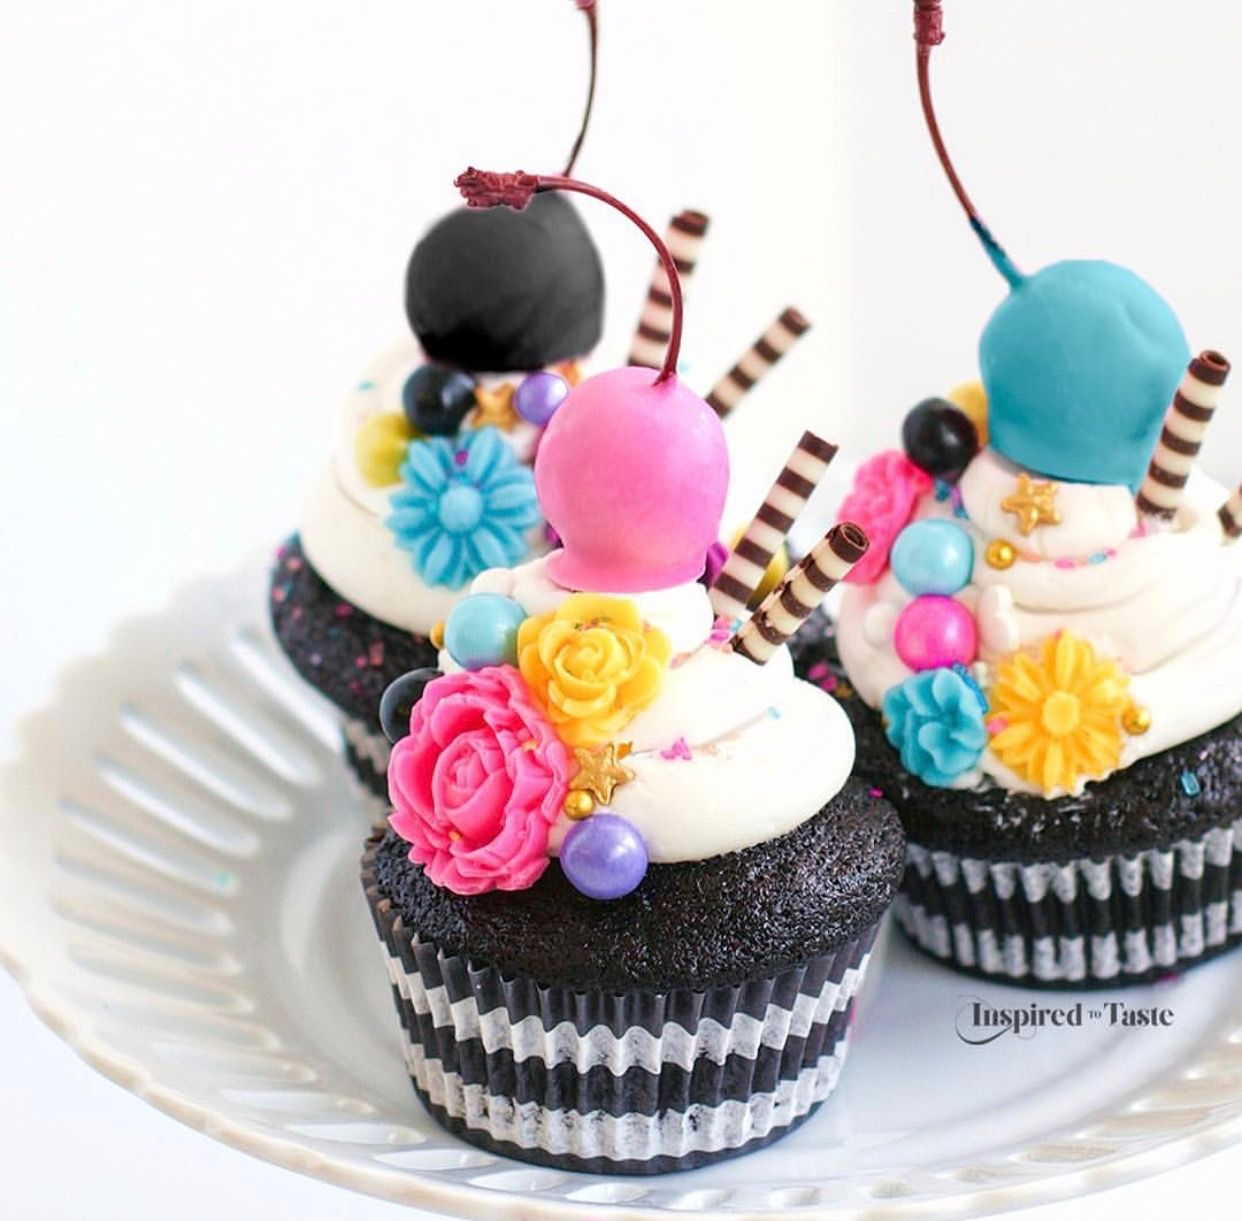 Pin by Brittany Skaggs on Recipes Creative cupcakes